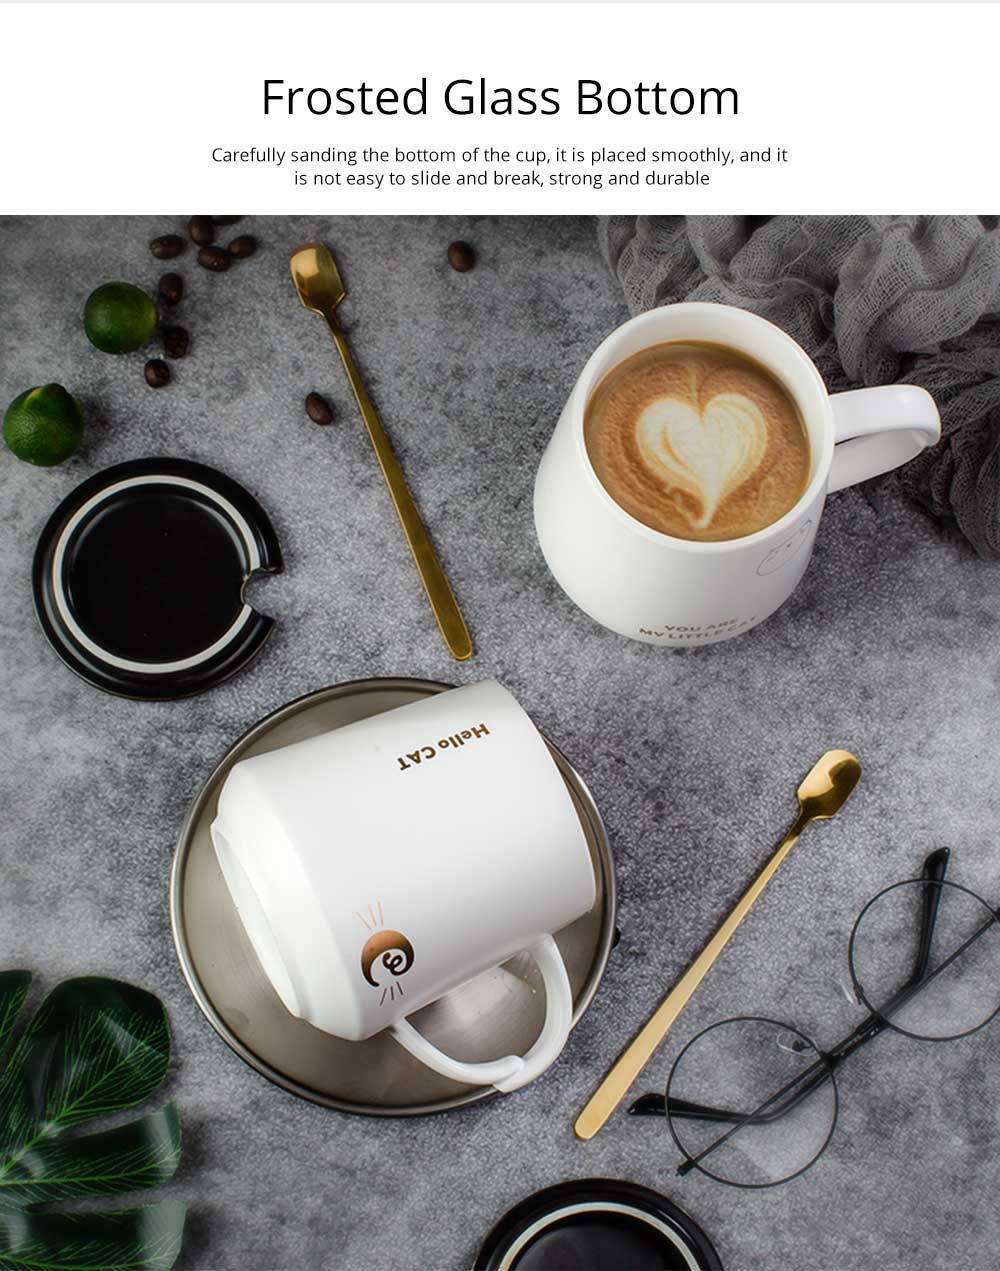 Trending Ceramic Mug for Female and Student, Cute Breakfast Coffee Cup with Lid Spoon 4